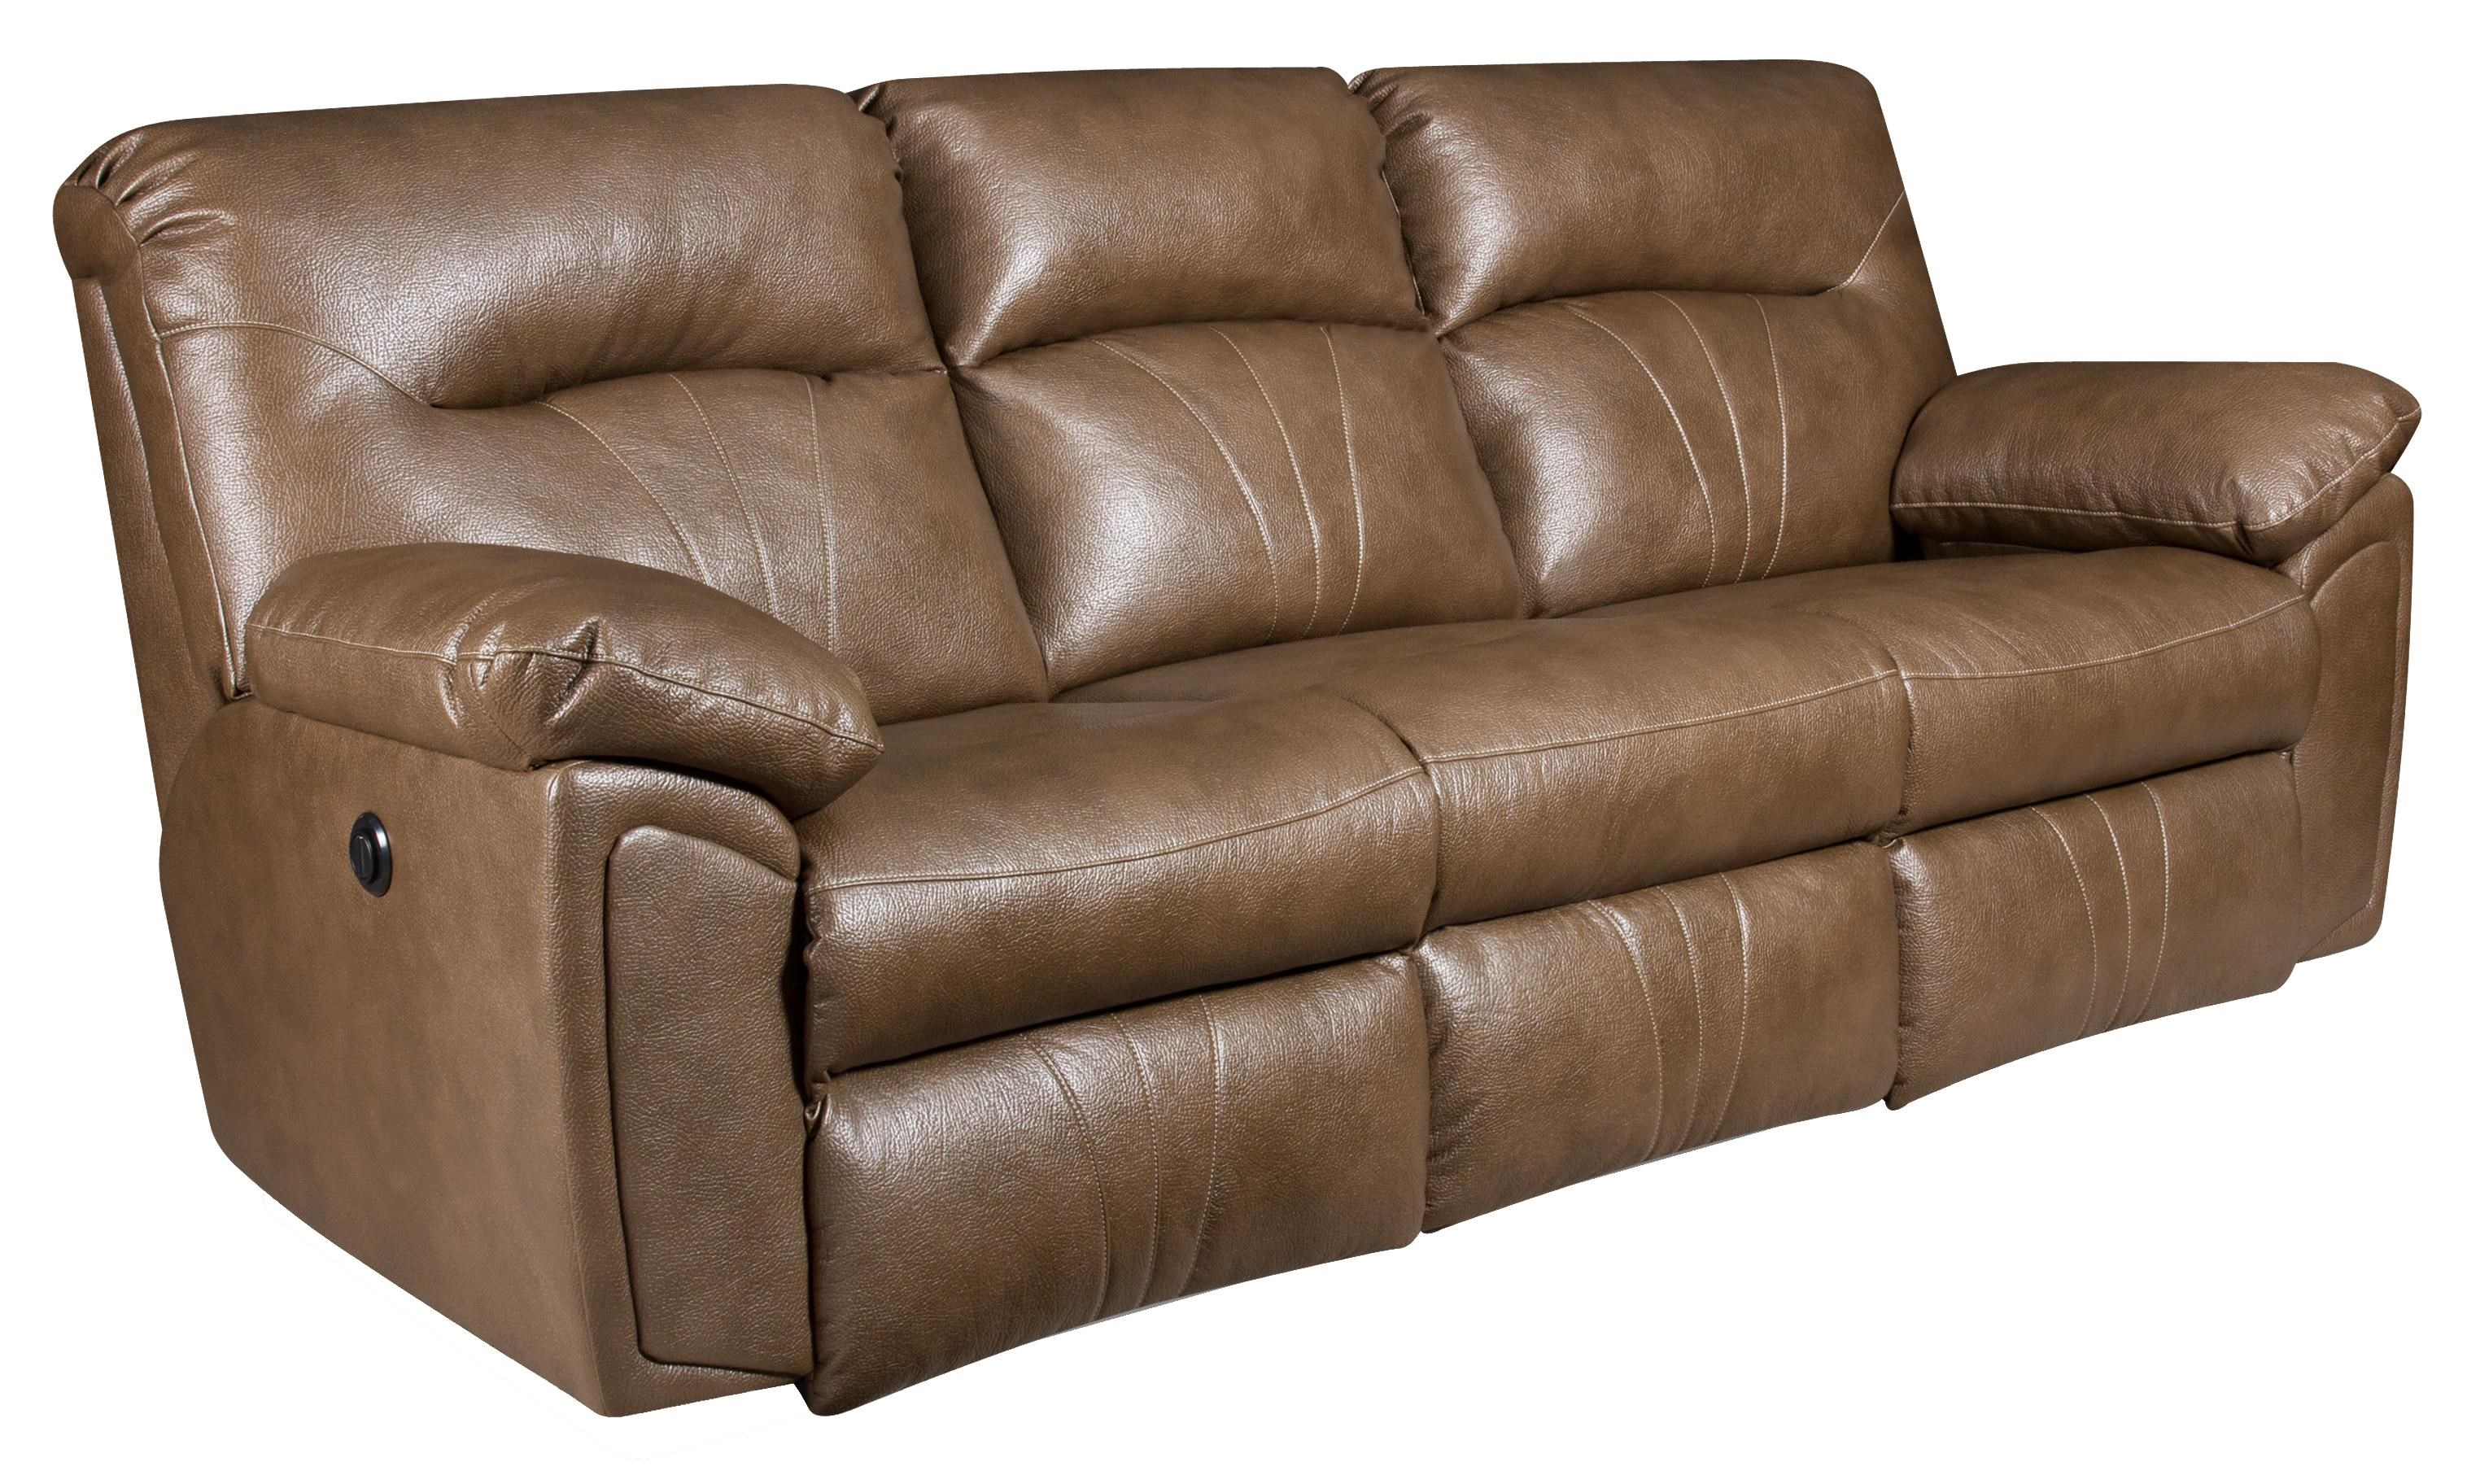 Southern Motion Splendor Collection 591 Reclining Sofa